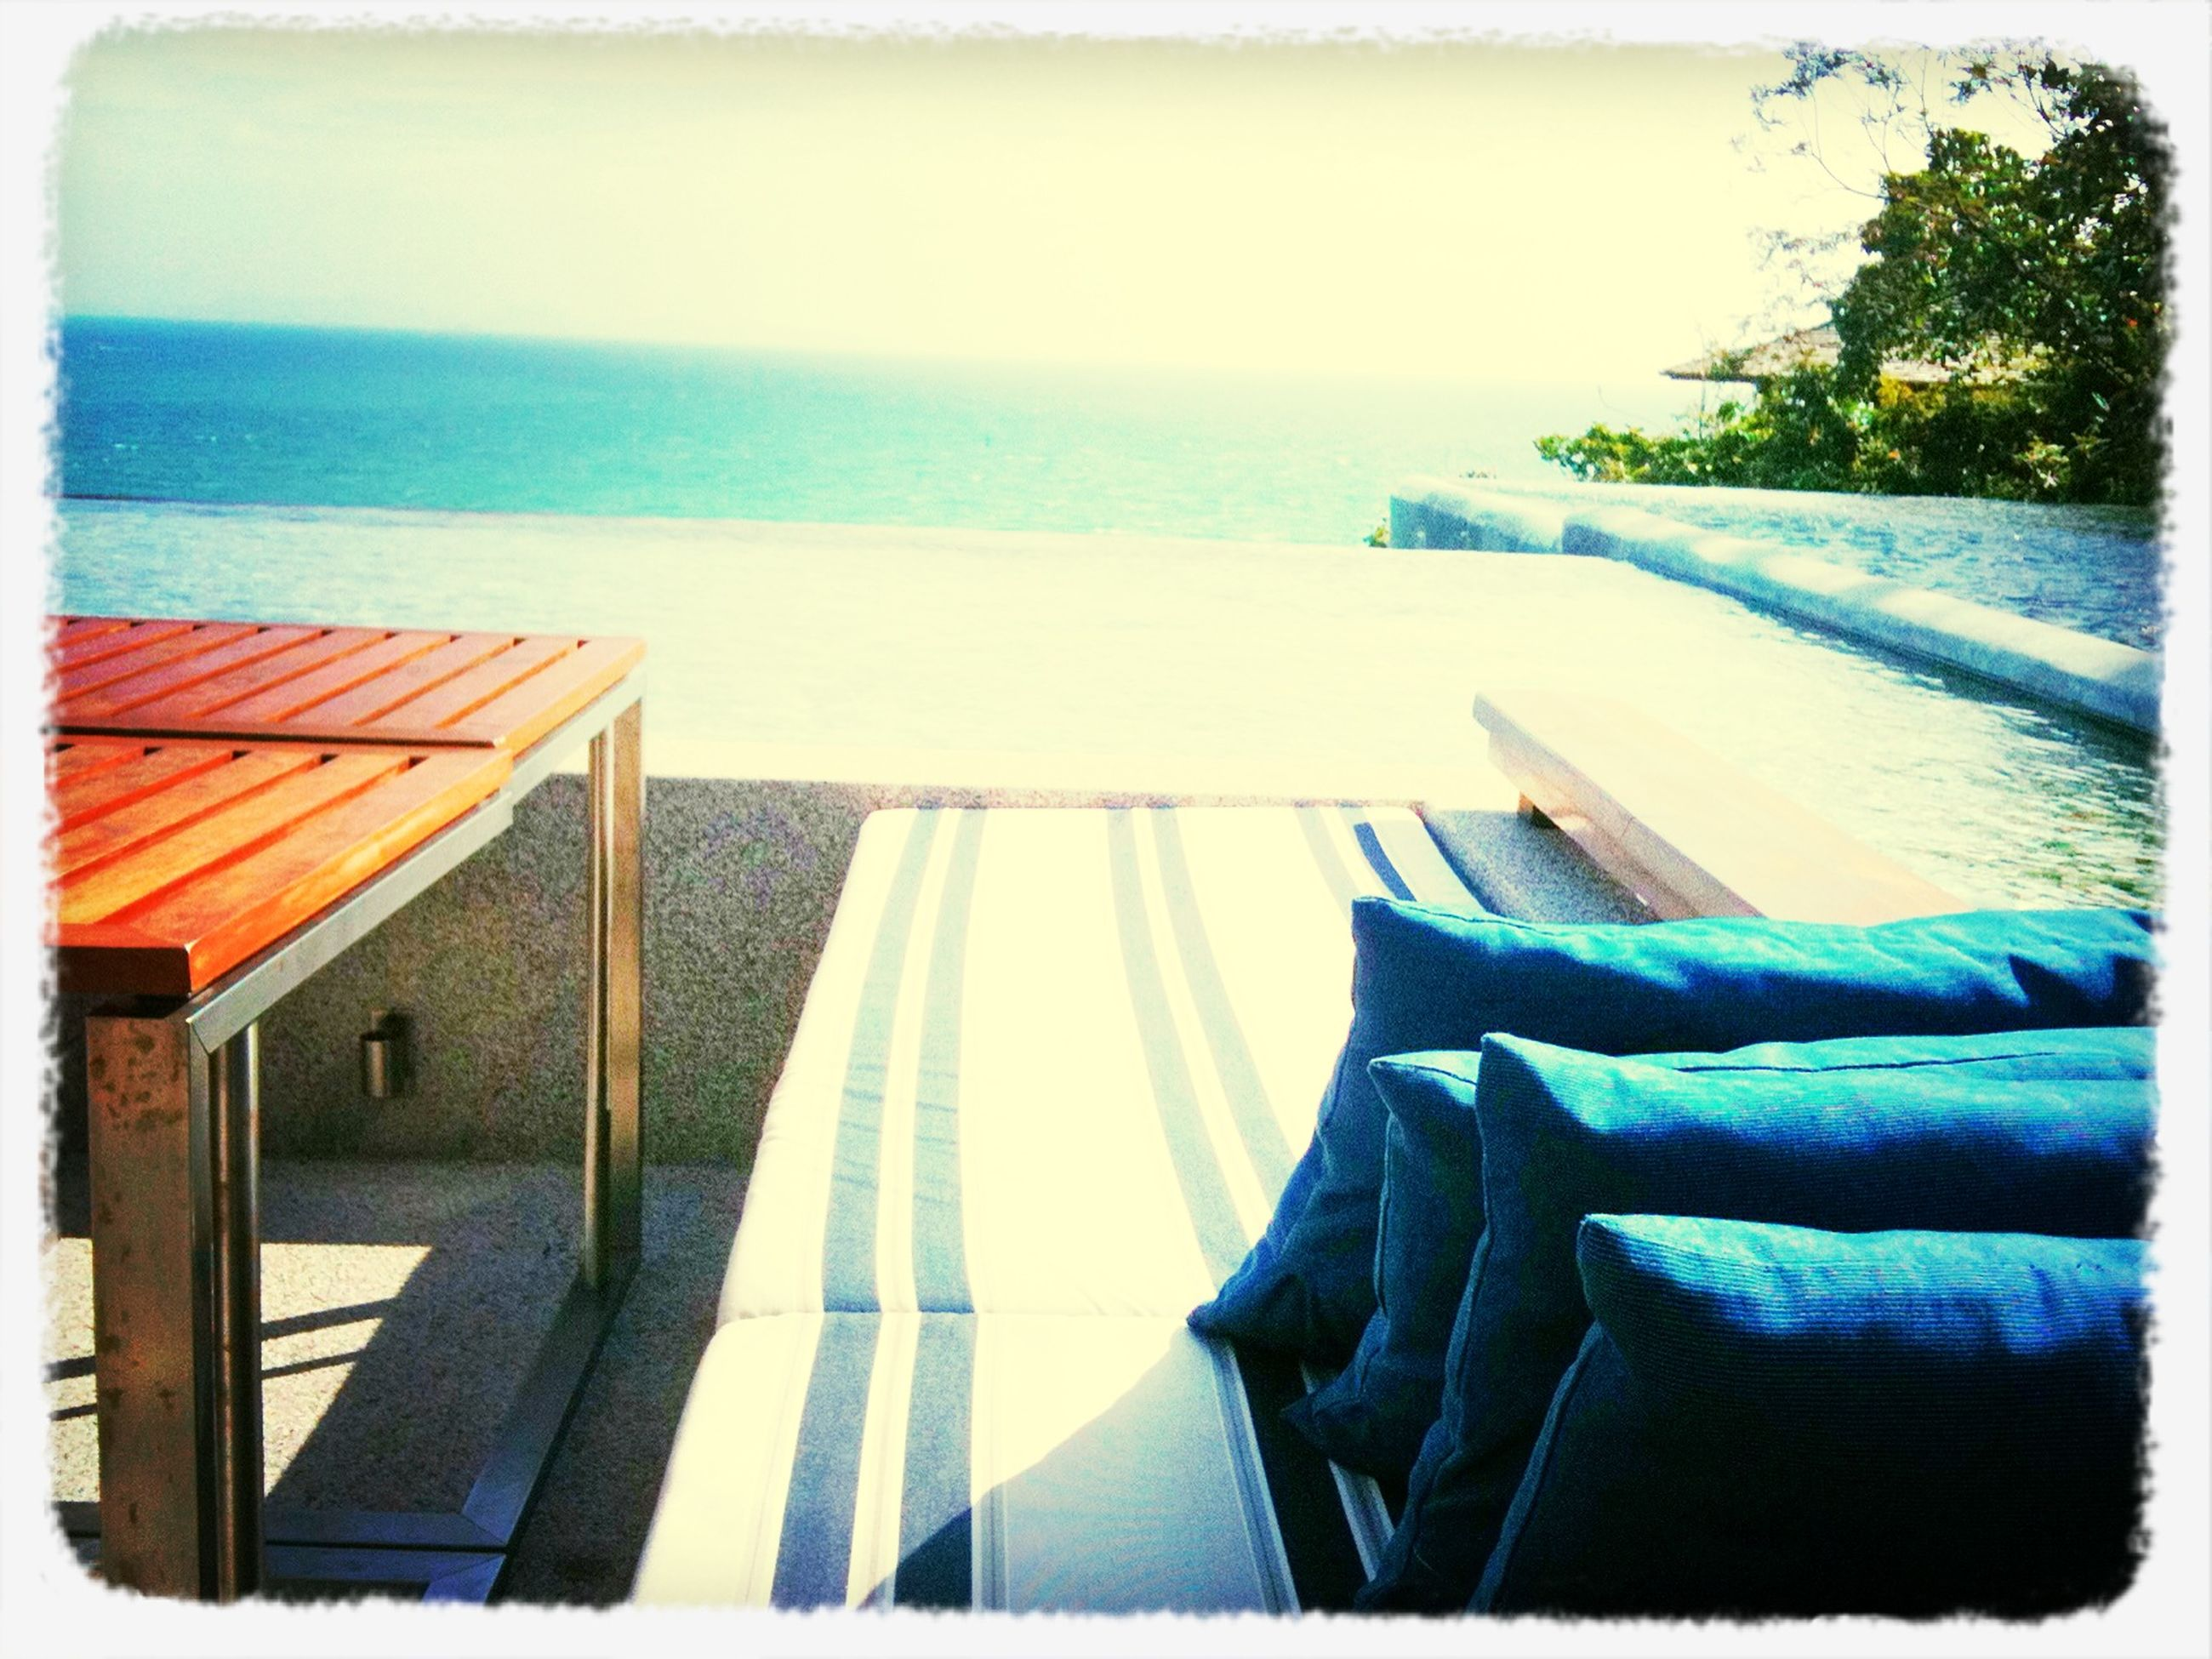 sea, transfer print, horizon over water, water, auto post production filter, railing, beach, absence, empty, chair, sky, sunlight, tranquility, day, lounge chair, nature, tranquil scene, table, swimming pool, relaxation